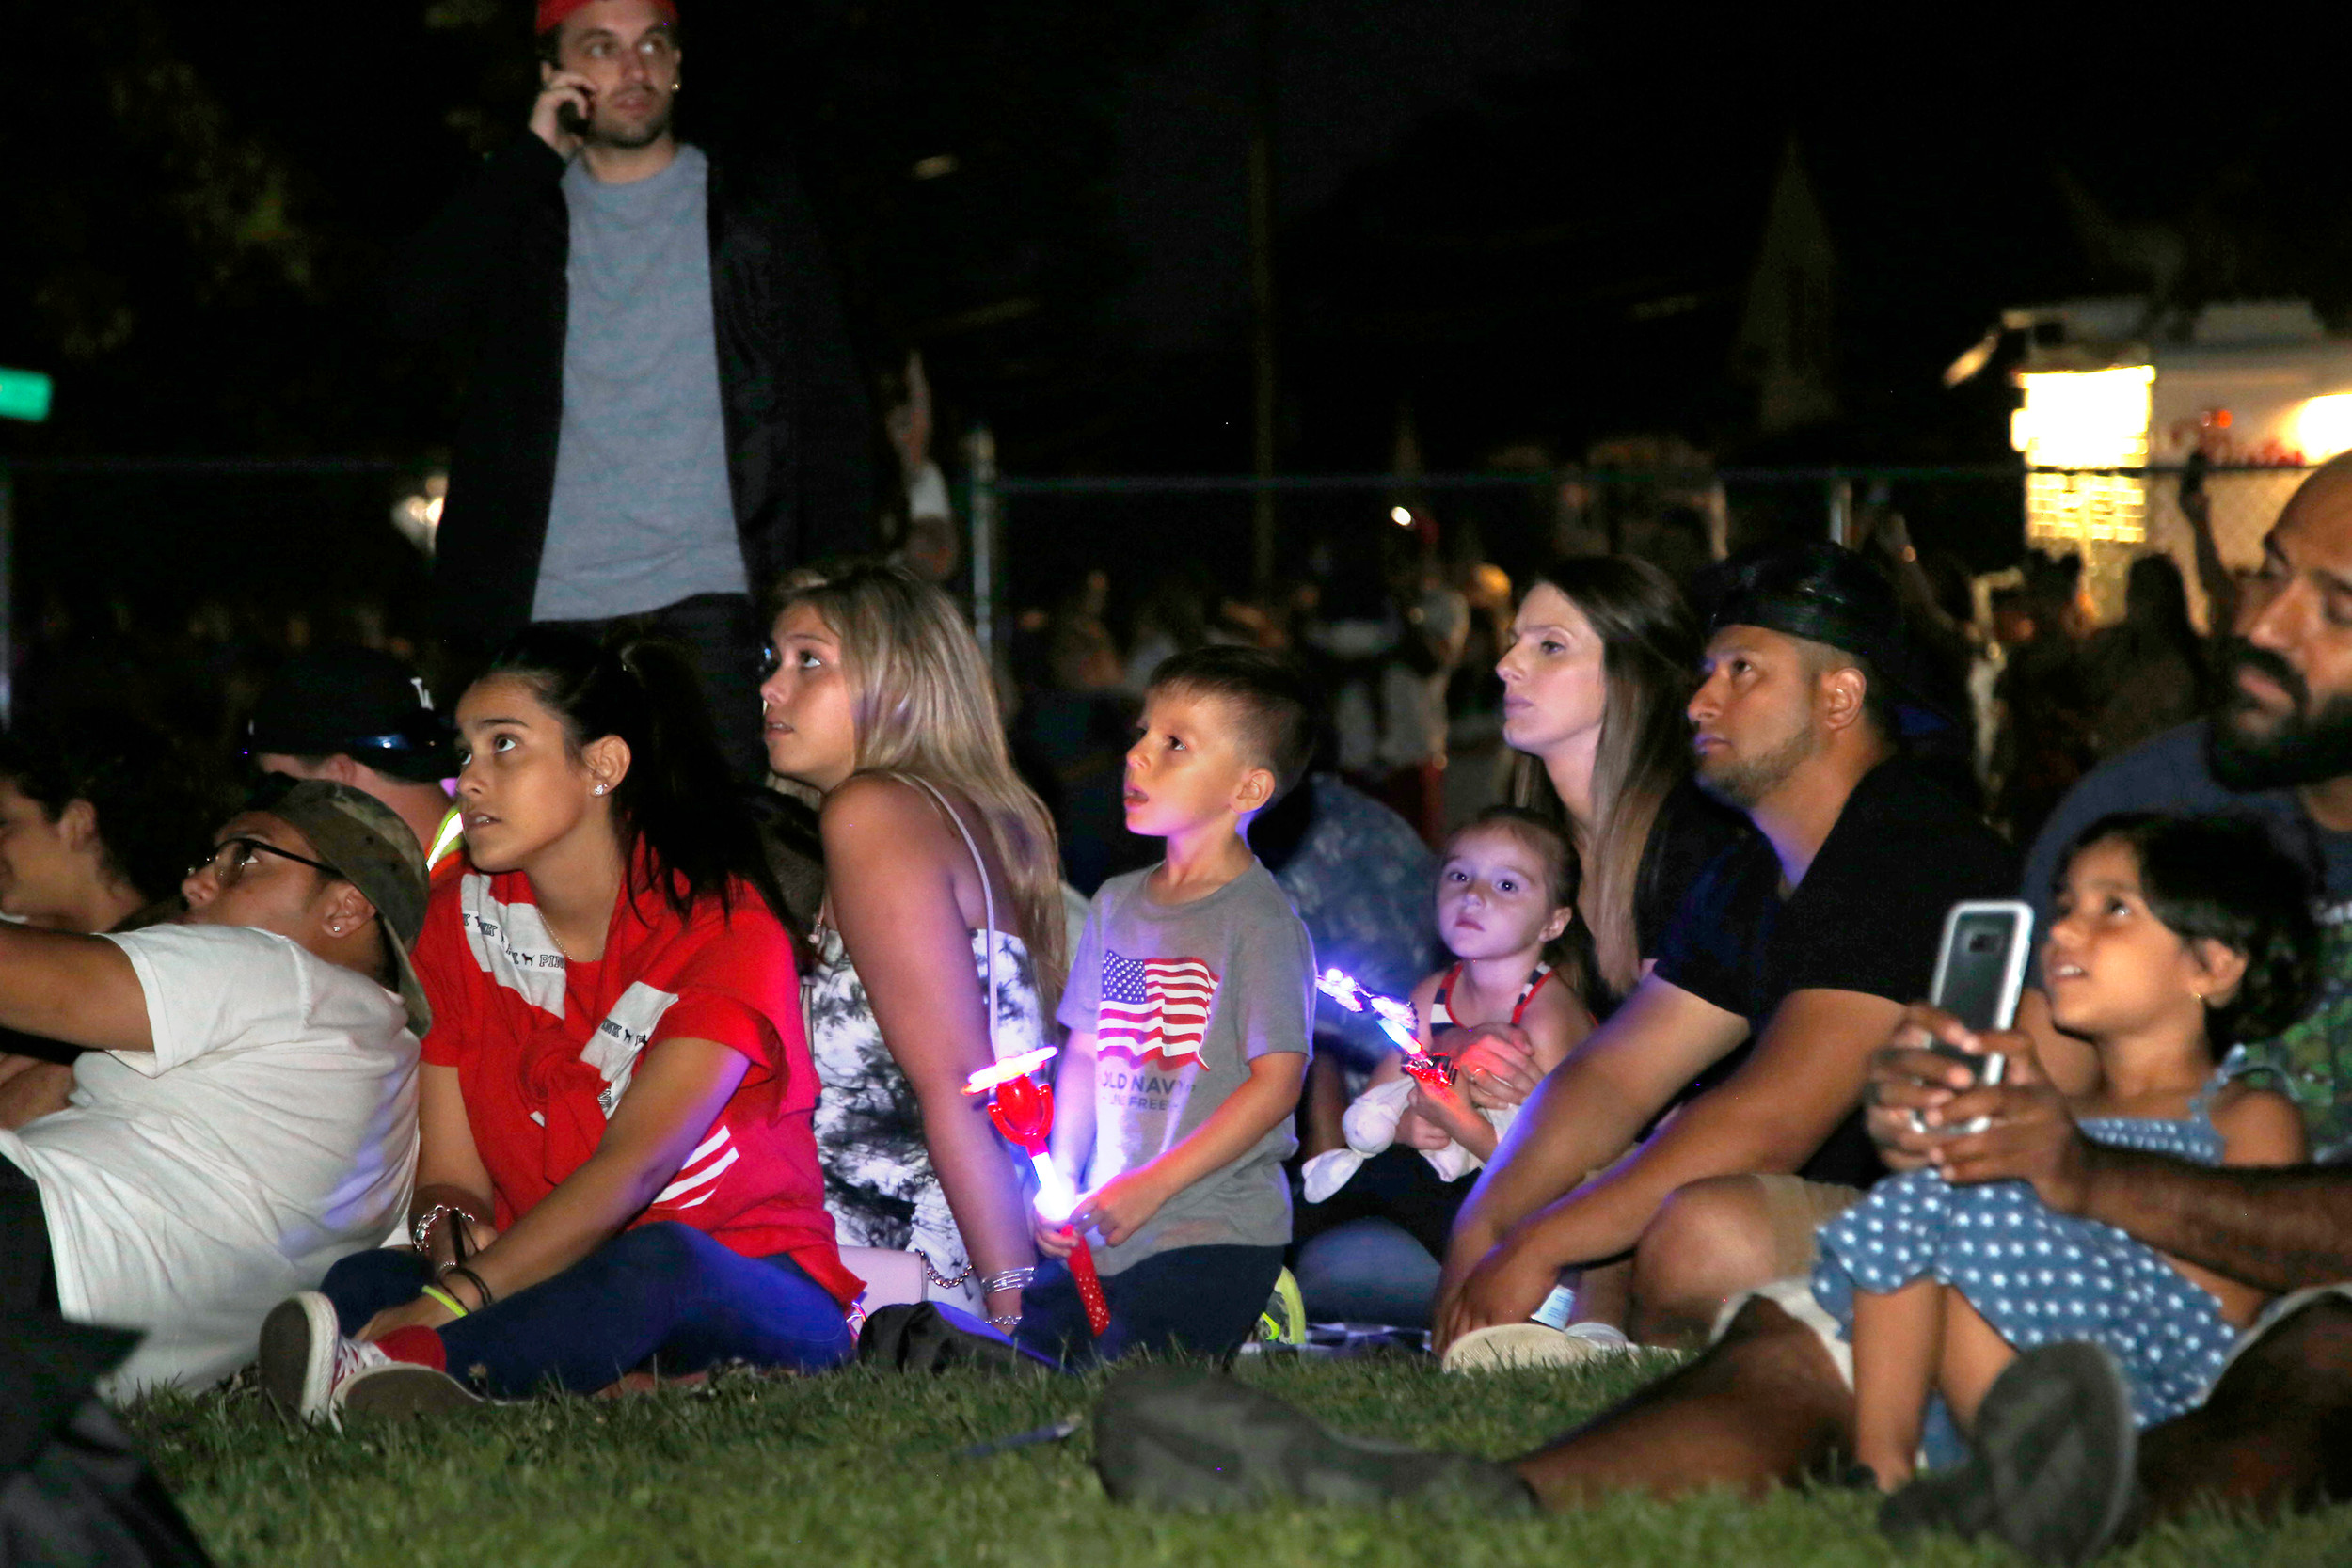 The crowd was mesmerized by the fireworks display.